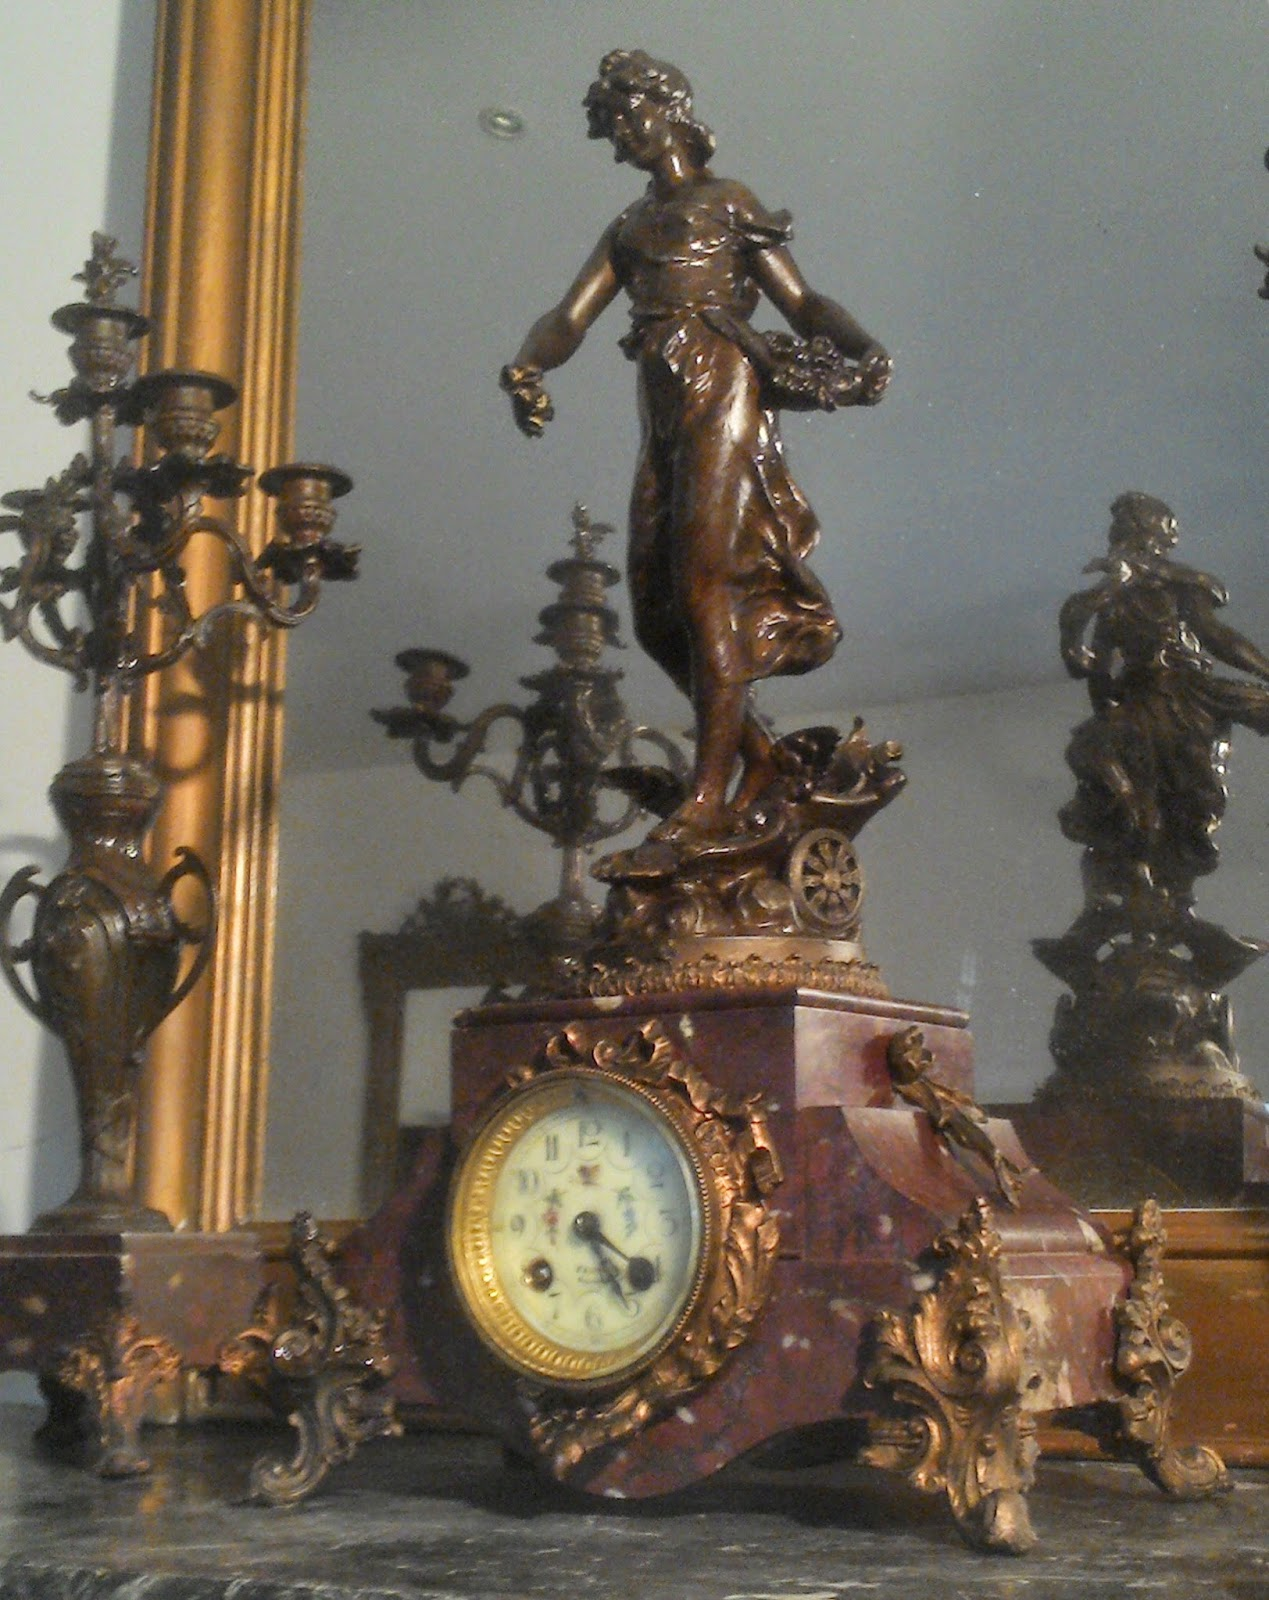 ancienne pendule sculpture flore par ch levy. Black Bedroom Furniture Sets. Home Design Ideas